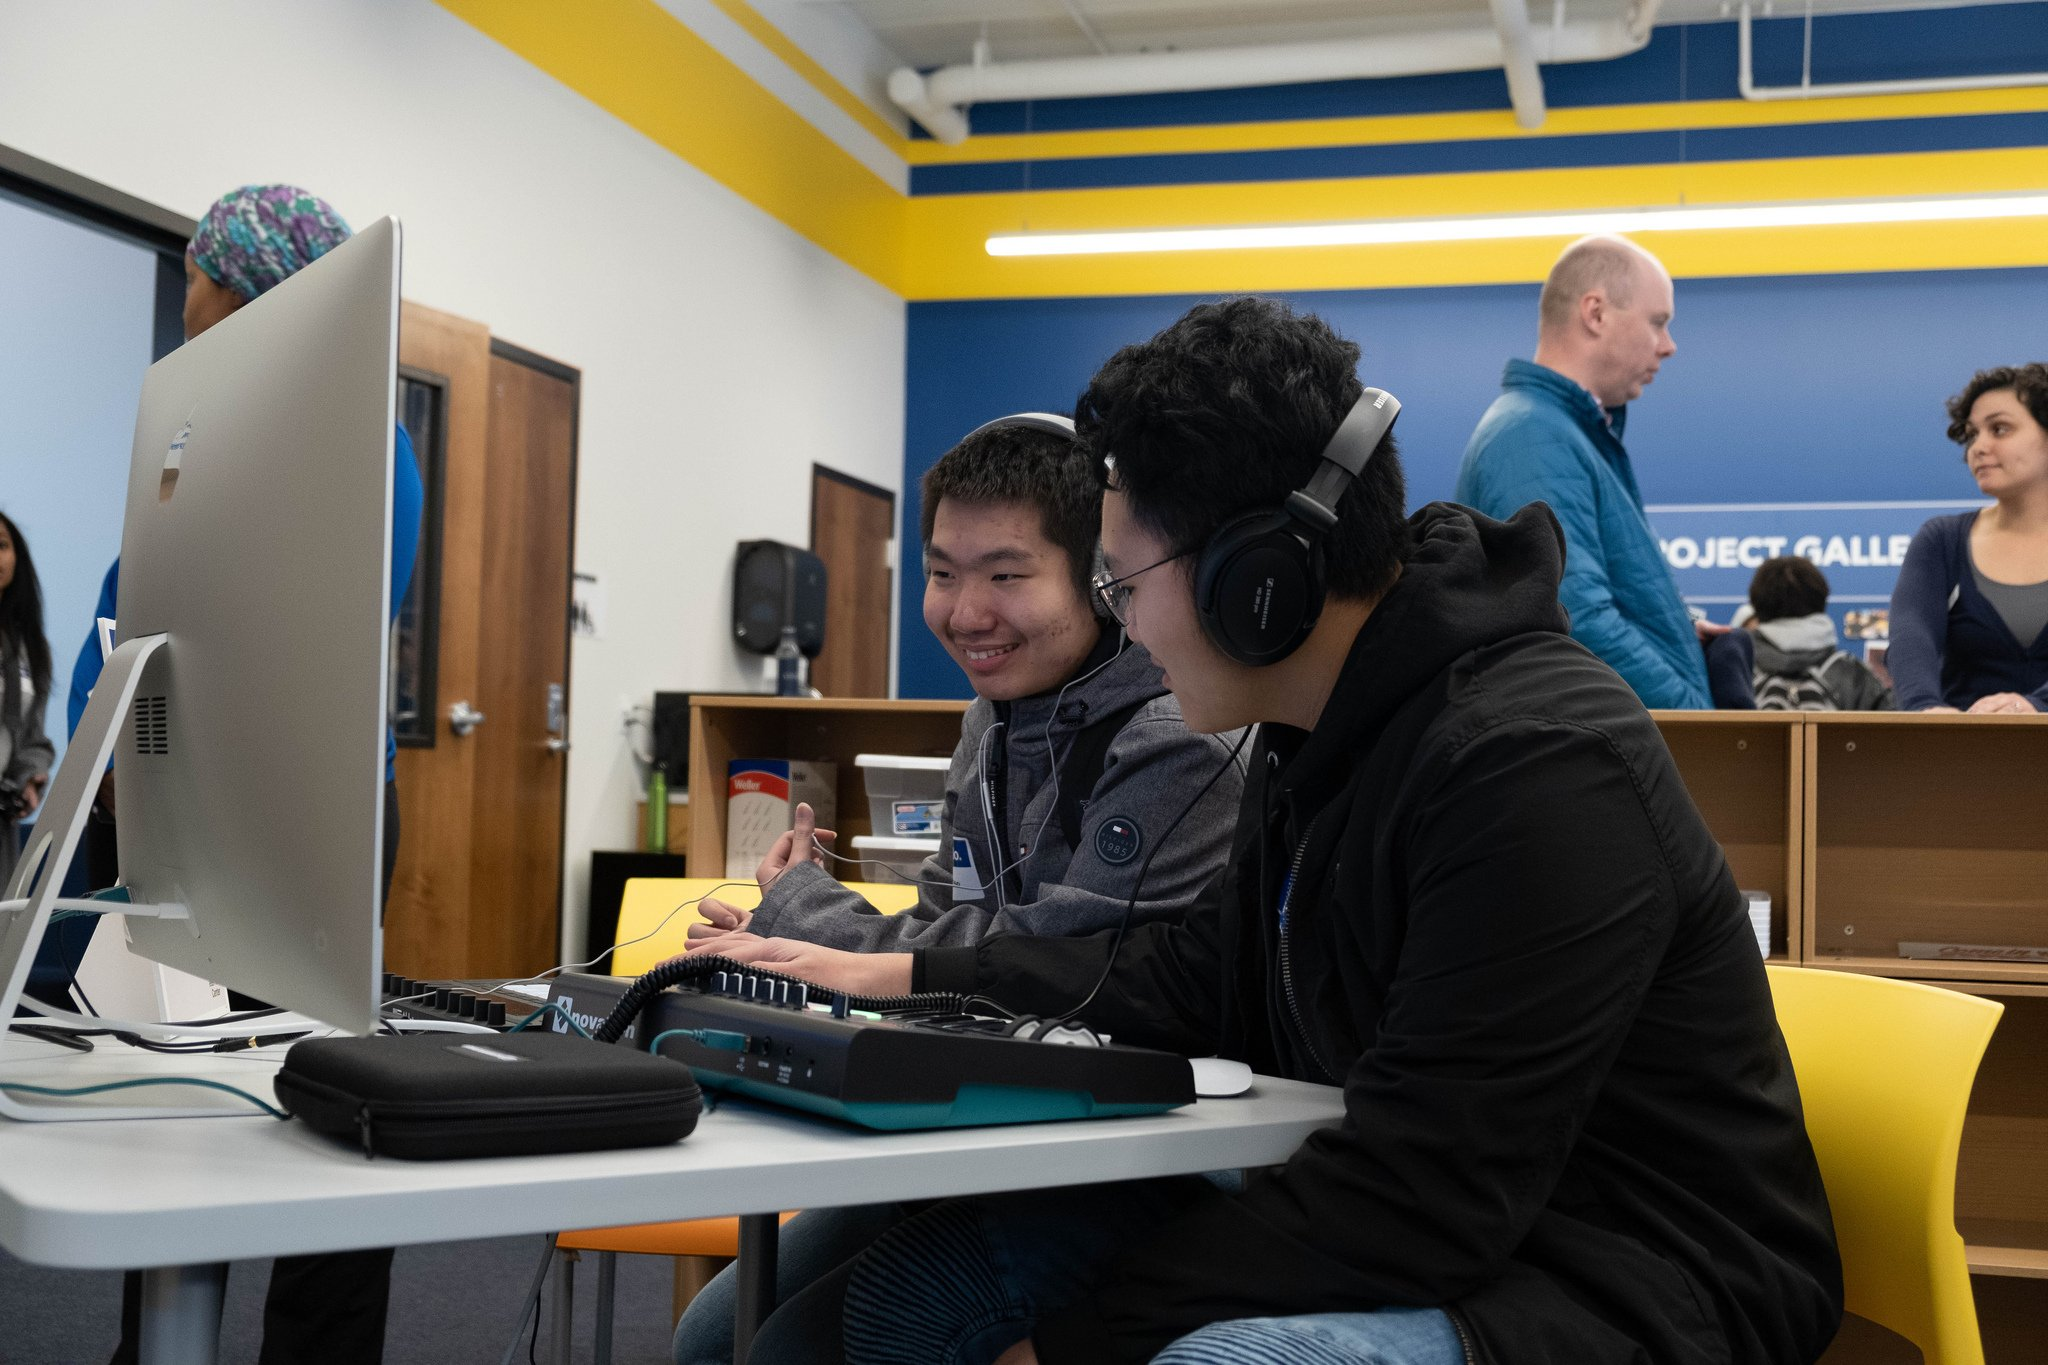 two young men work together at a computer audio workstation